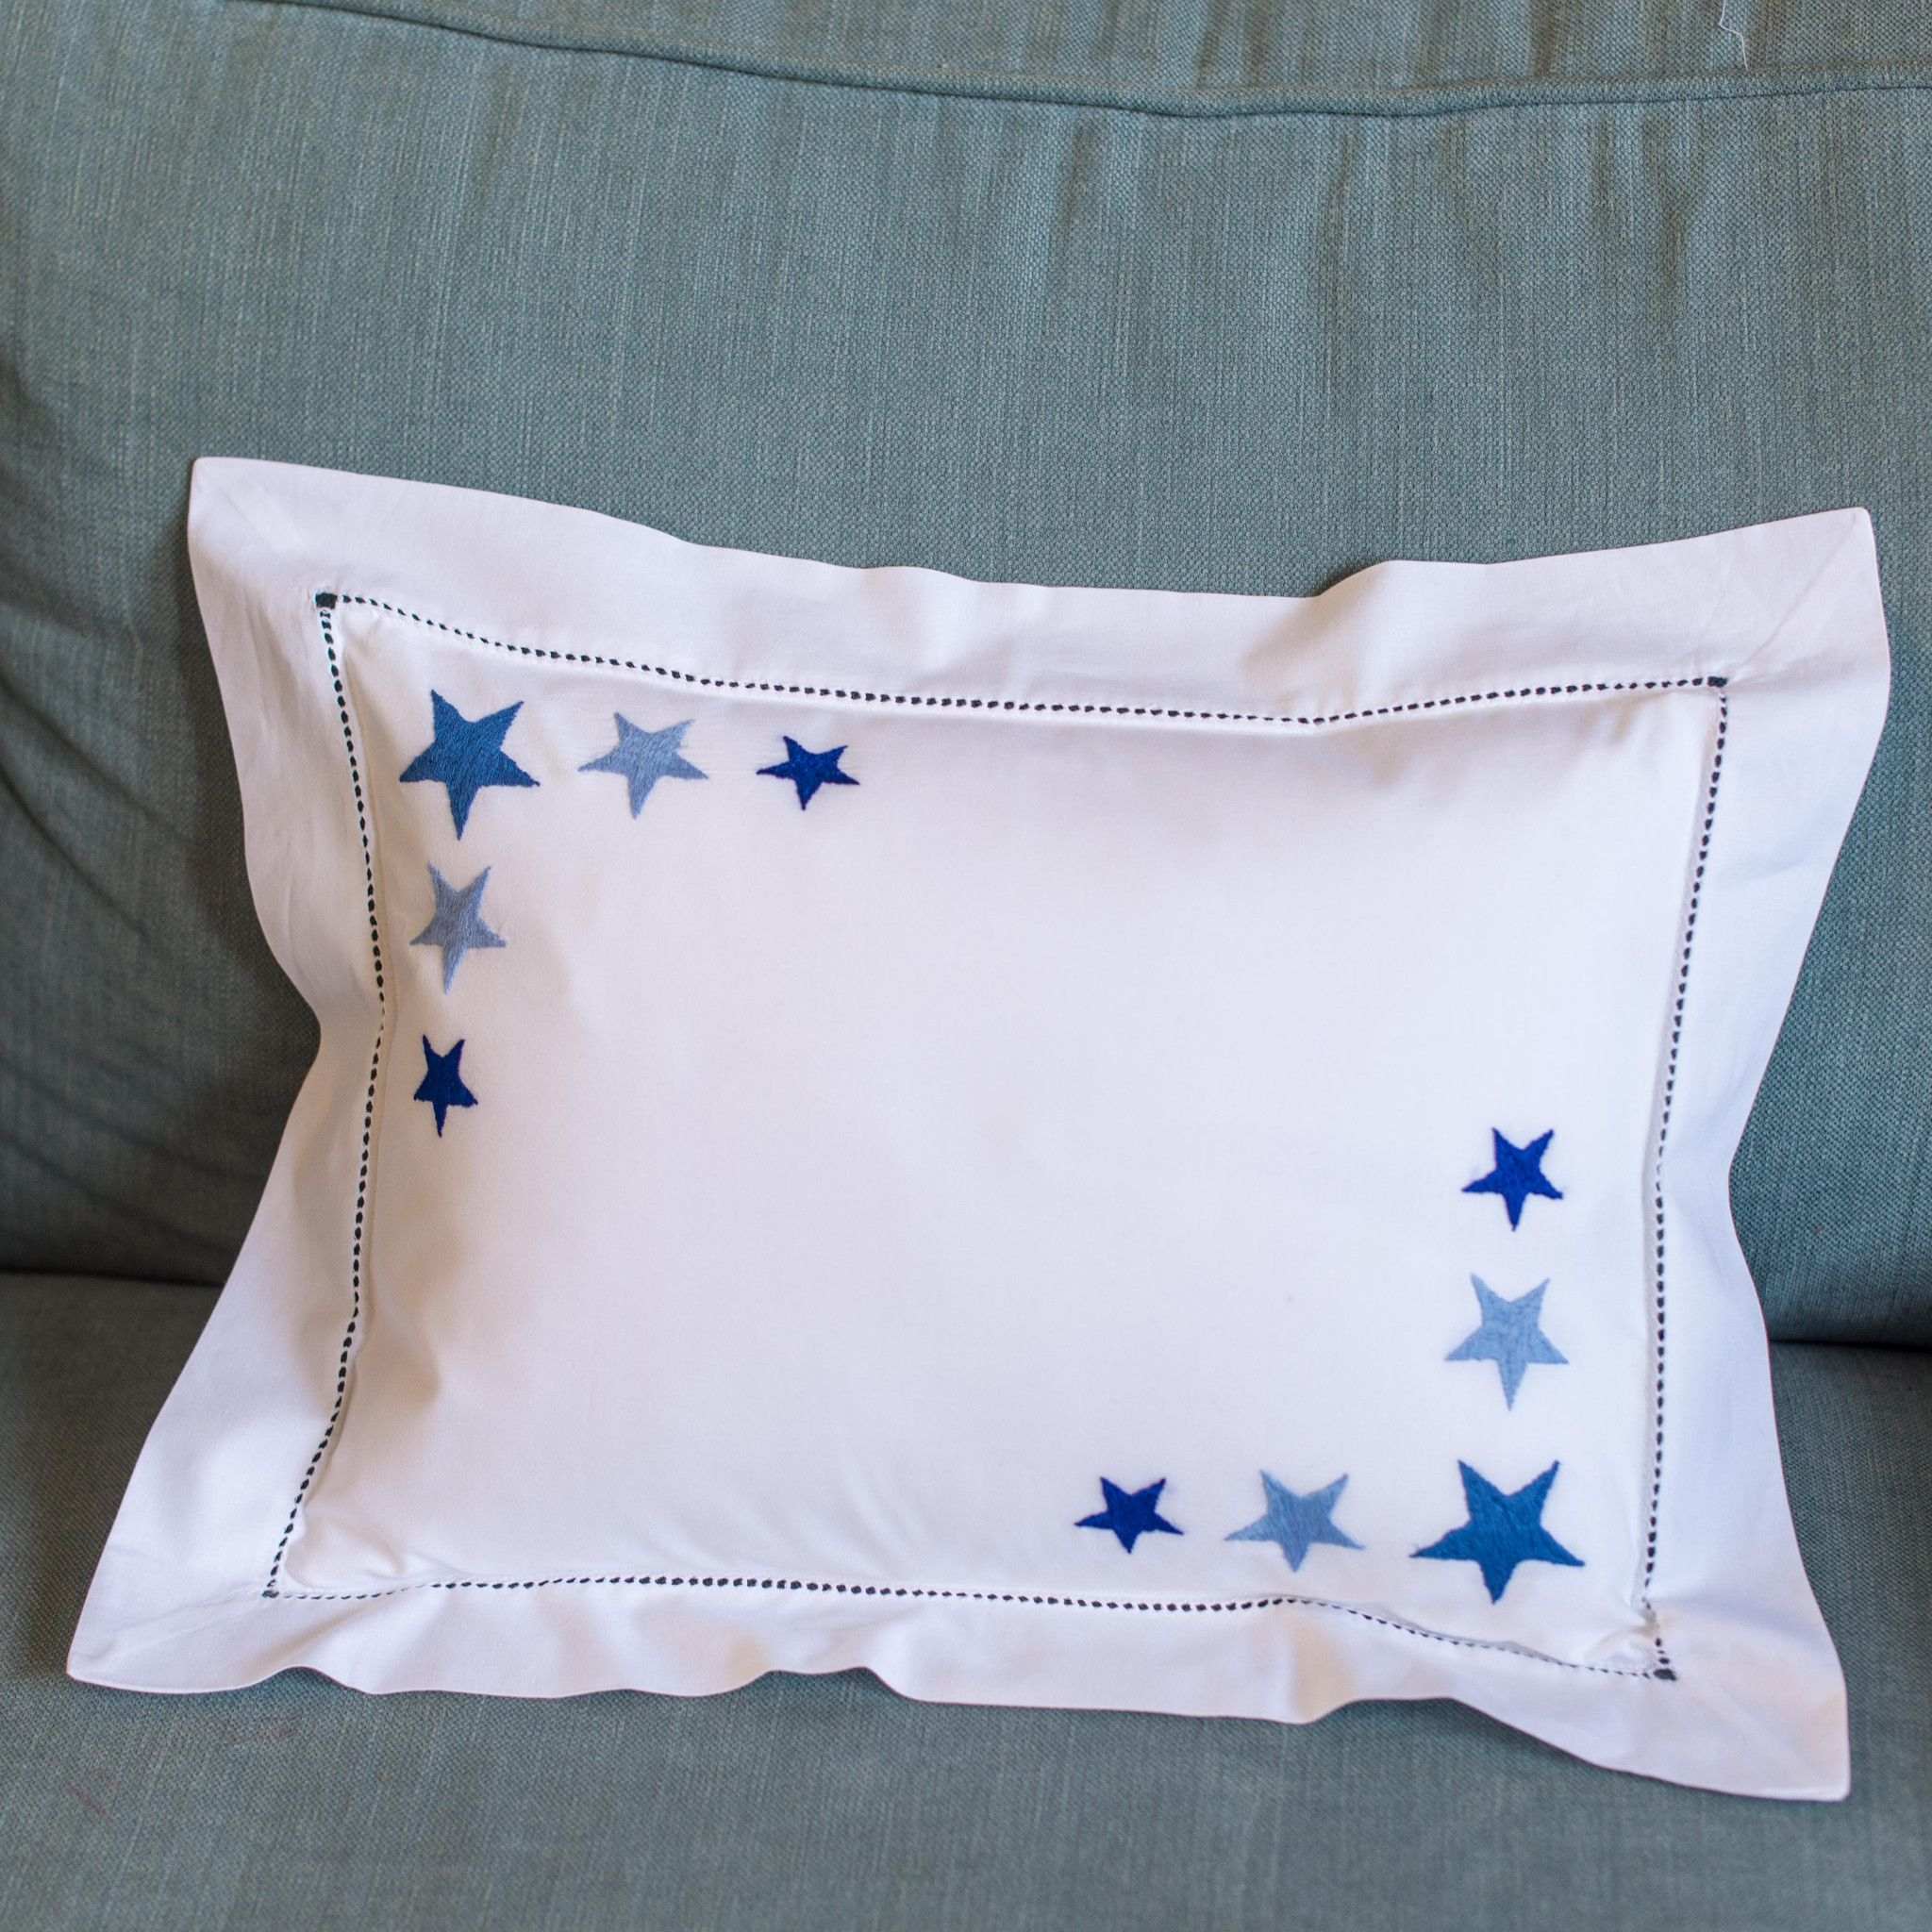 NEW baby pillowcase with hand embroidered star cluster in two corners.Also available in pink. 30cm x 40cm 100% cotton, 200...